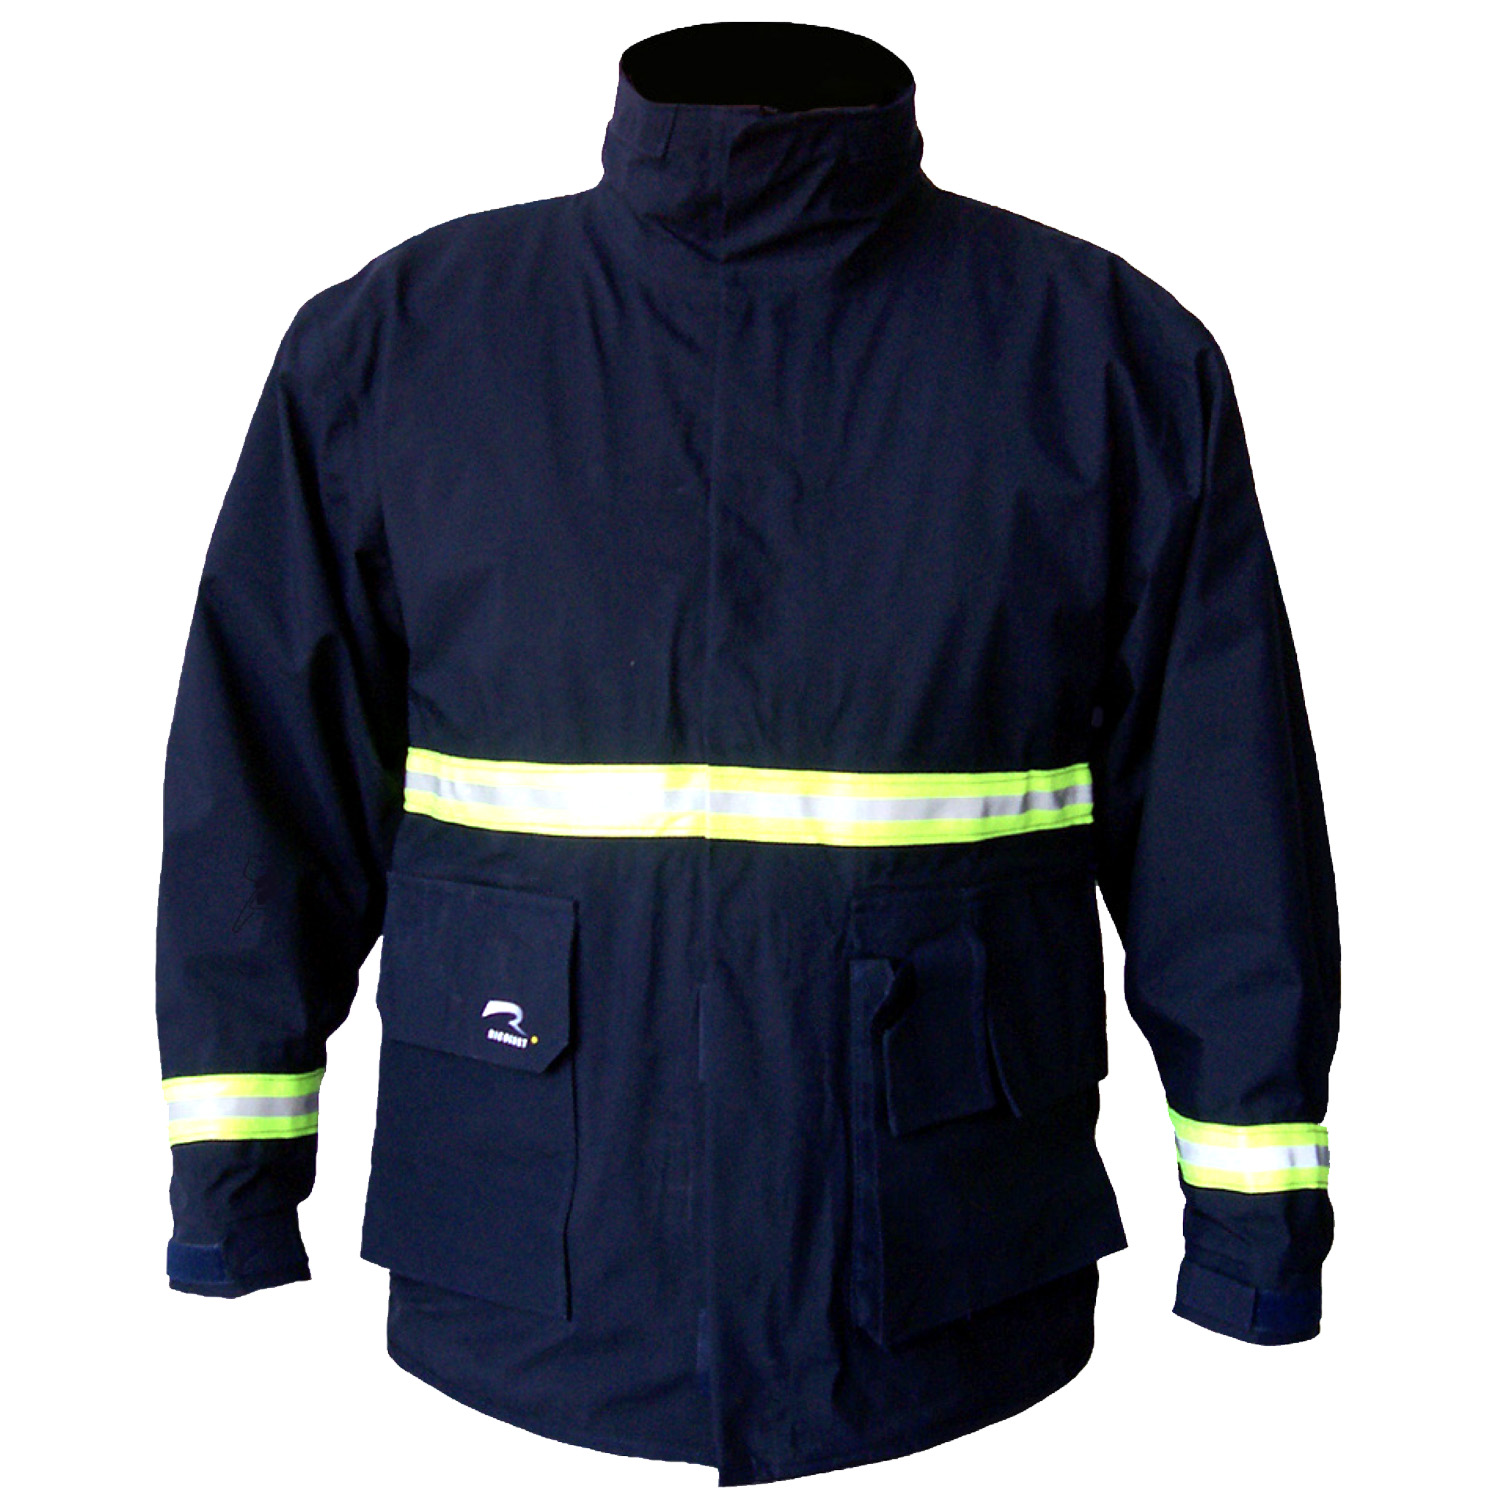 Ricochet FrontLine EMS™ 206 Series Jacket Front in Blue ideal for EMS